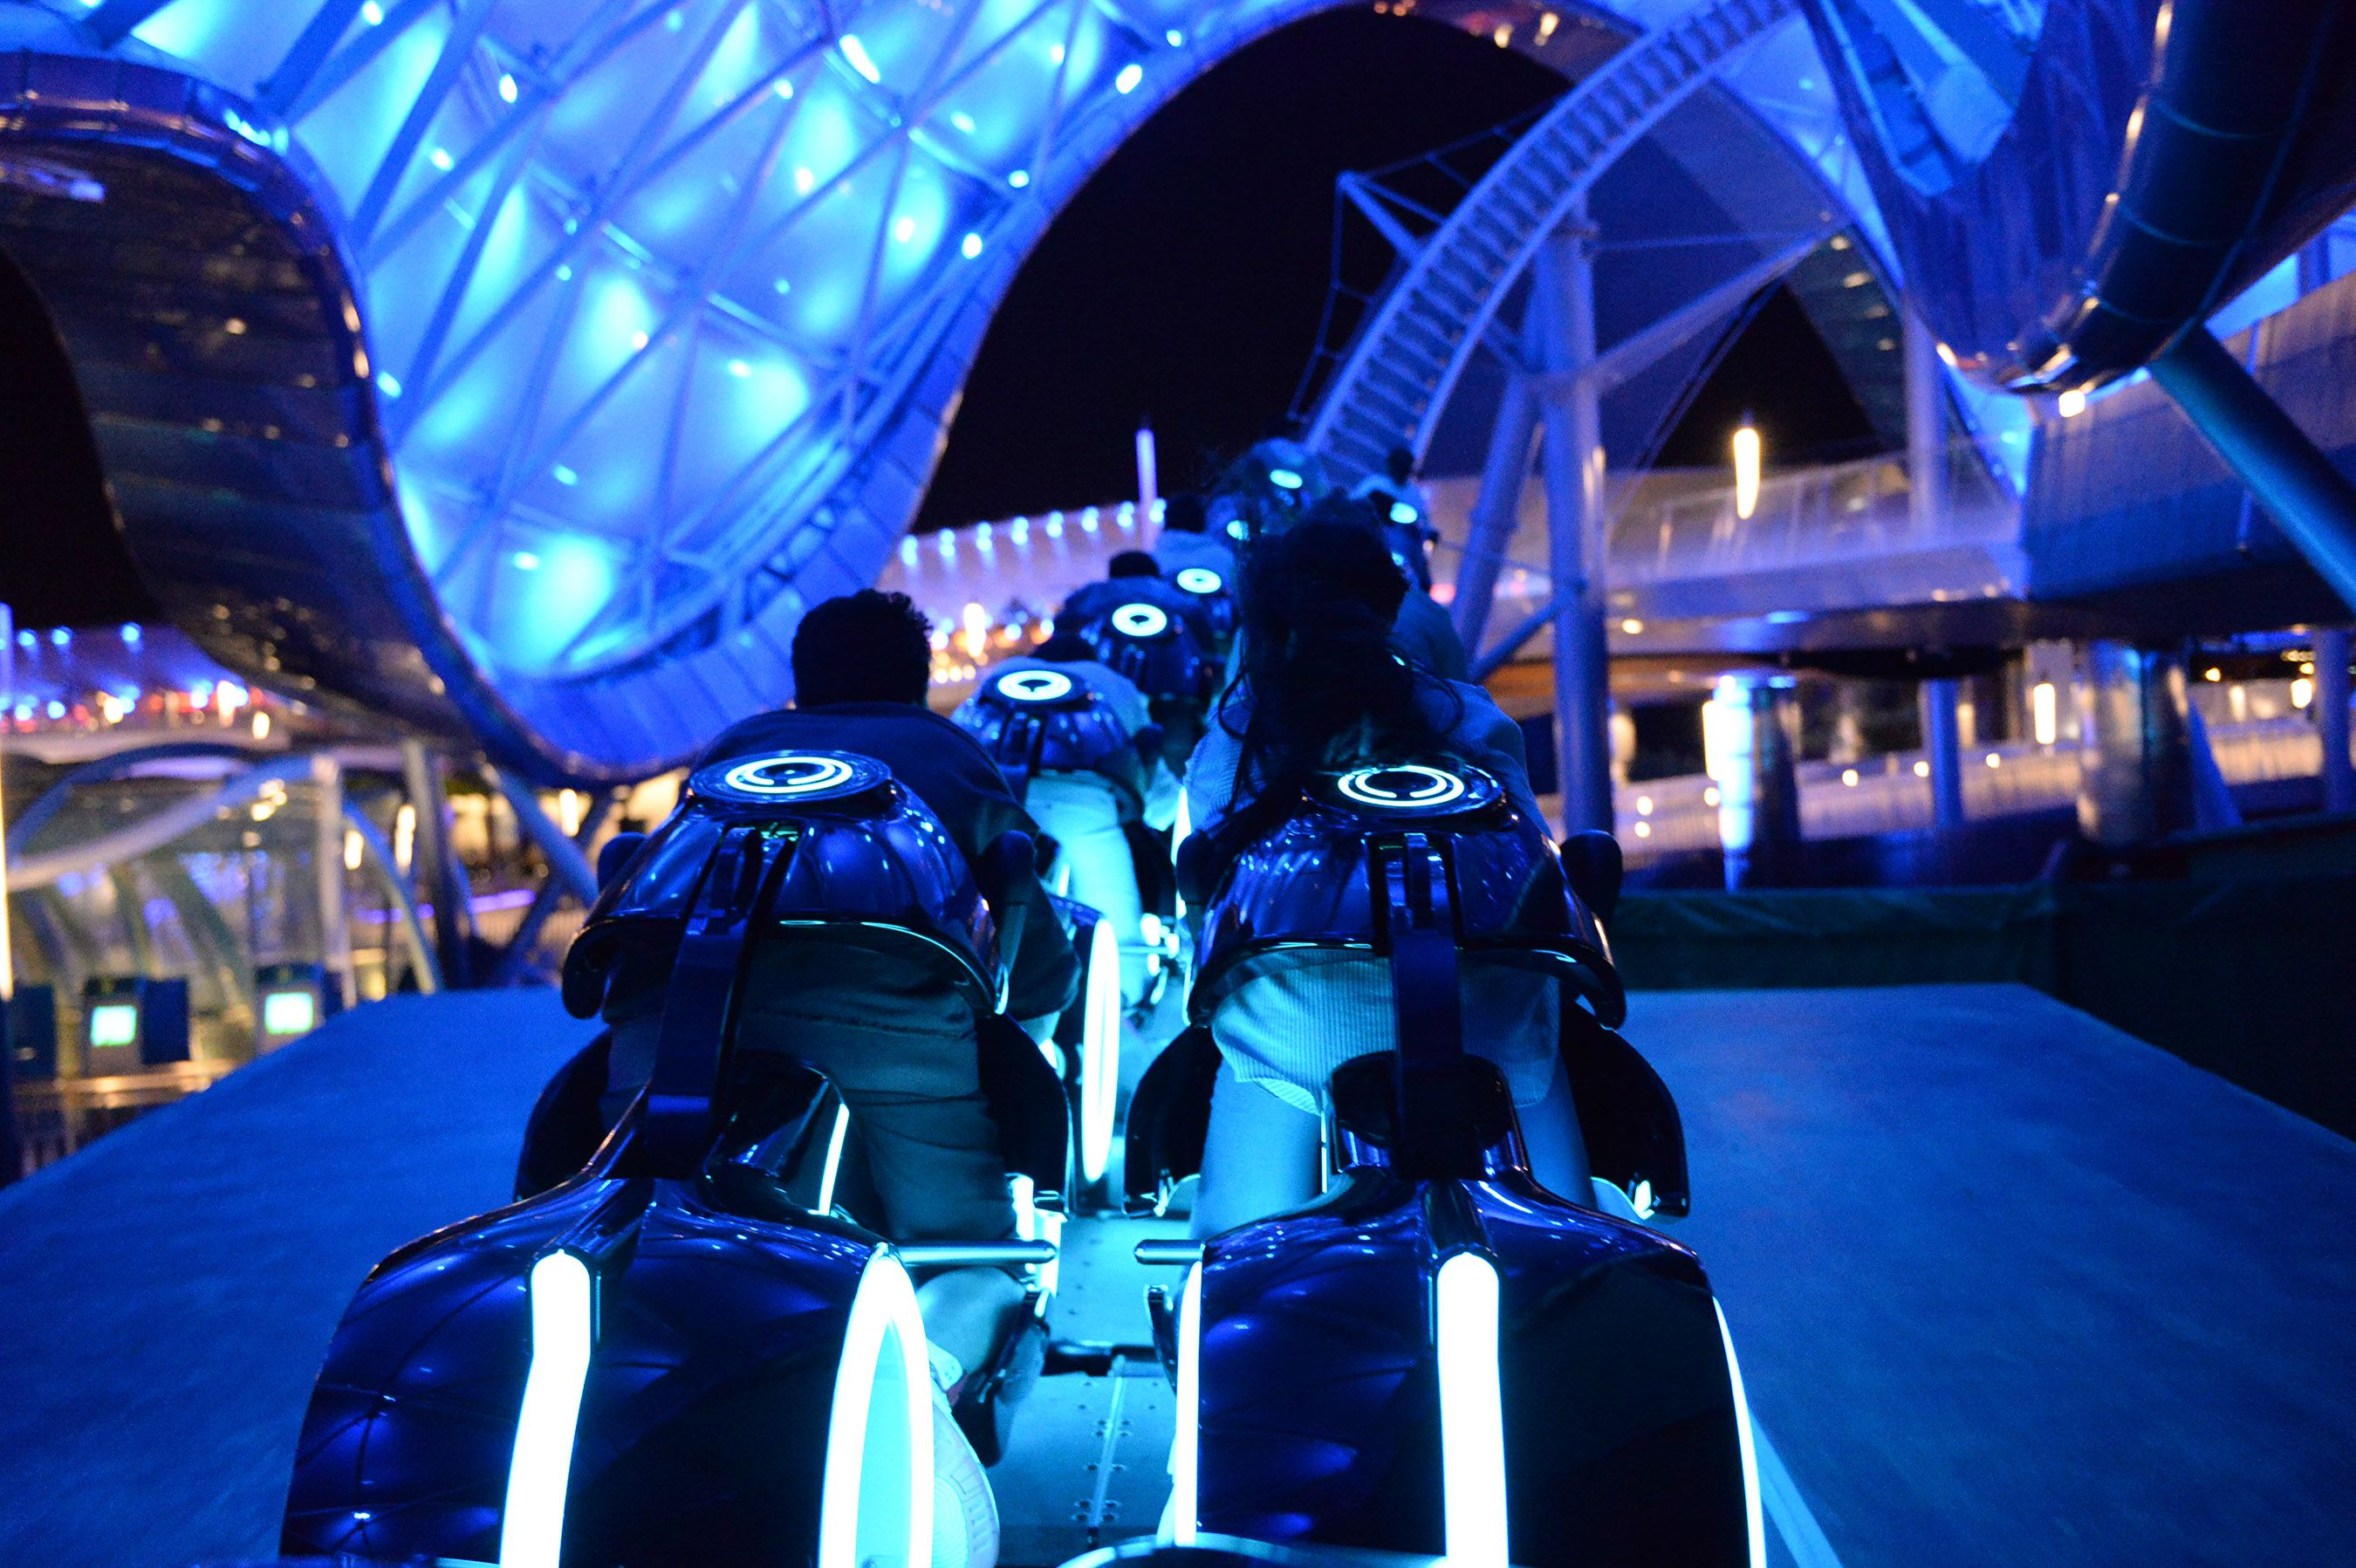 Tron Roller Coaster - Review of Shanghai Disneyland Ride